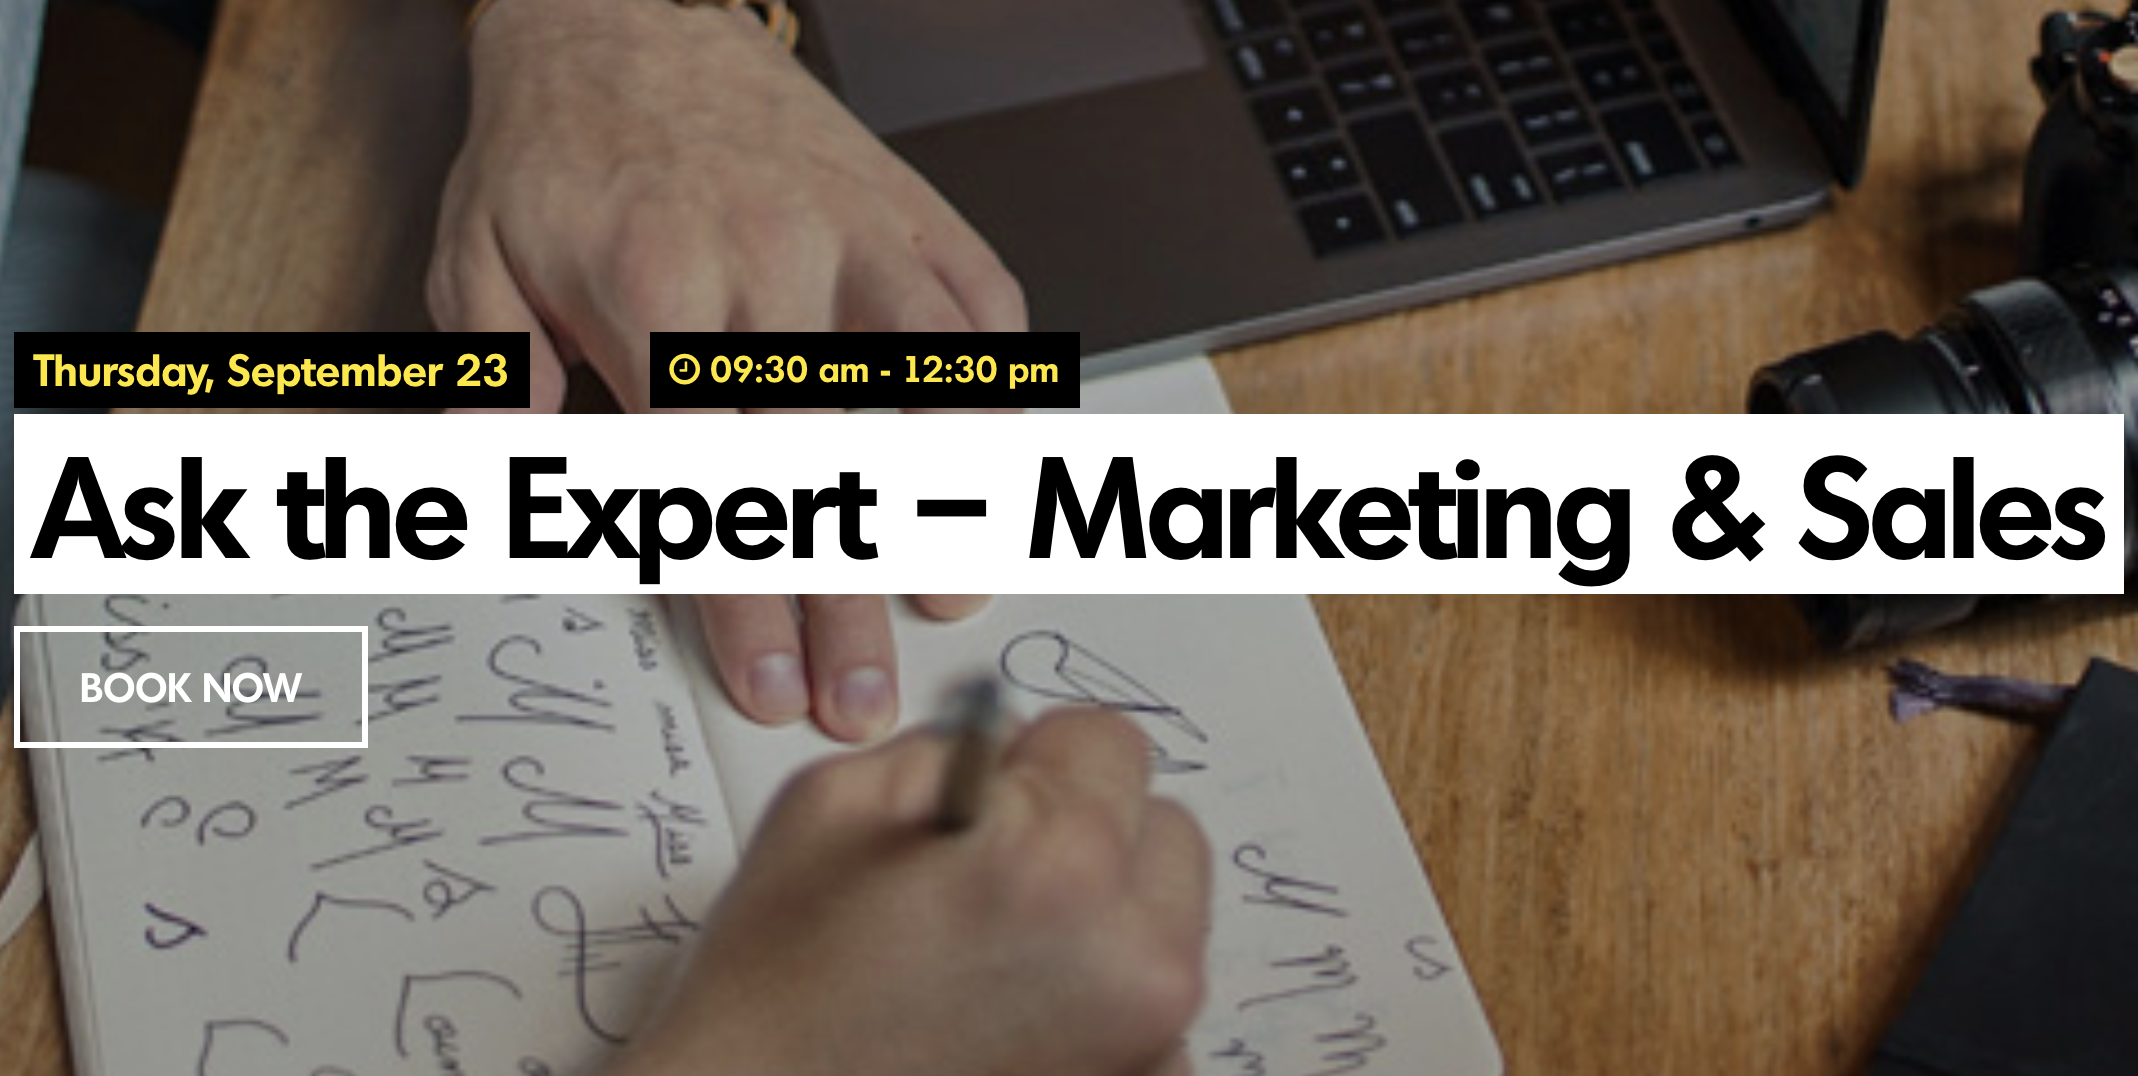 Ask the Expert - Marketing & Sales